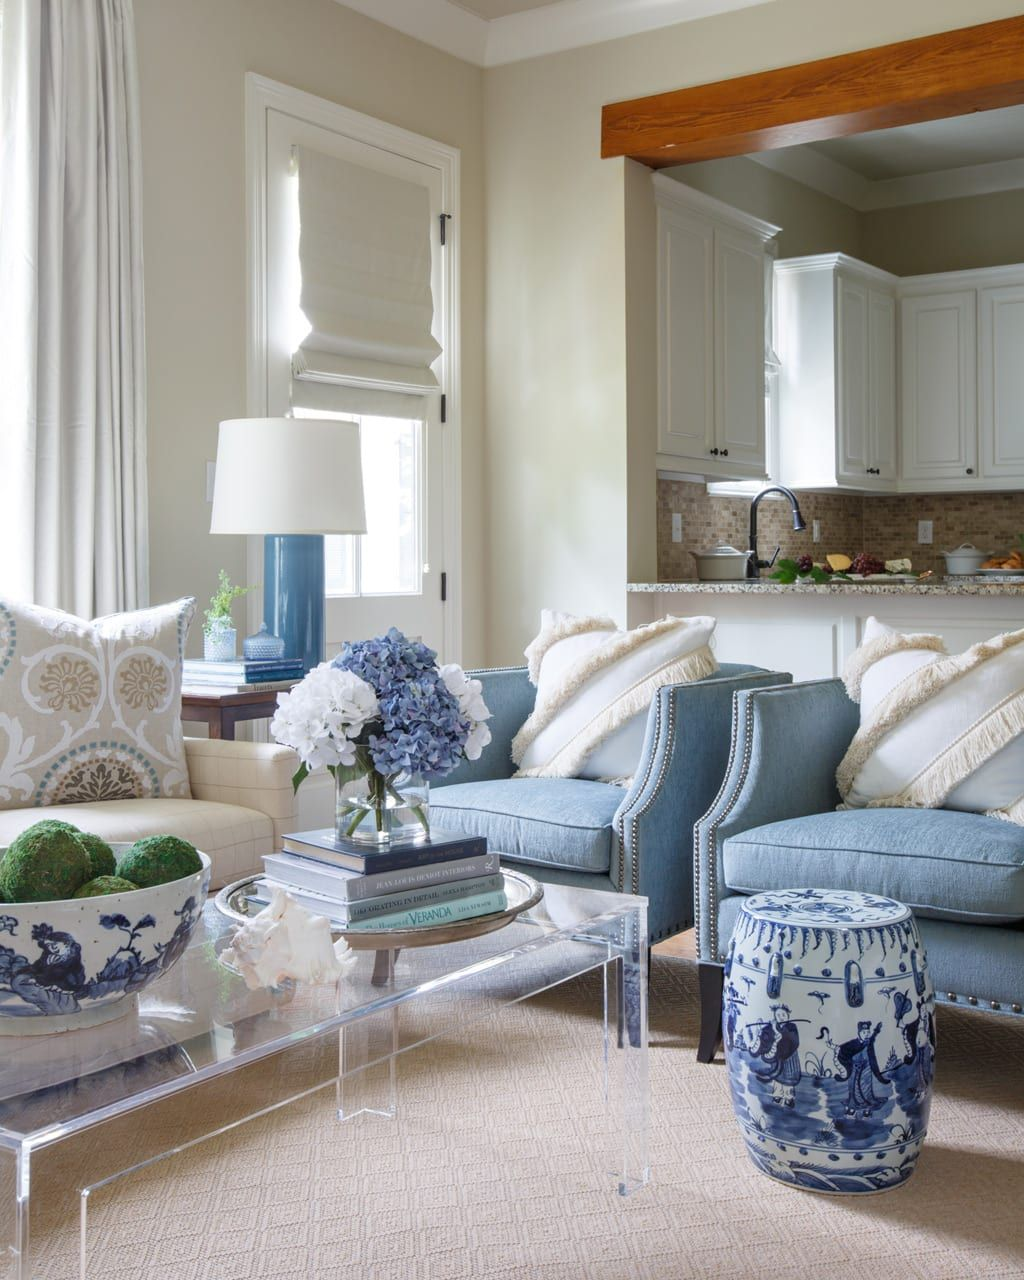 House Tour Cape Cod Inspired Home By Rachel Cannon Living Room